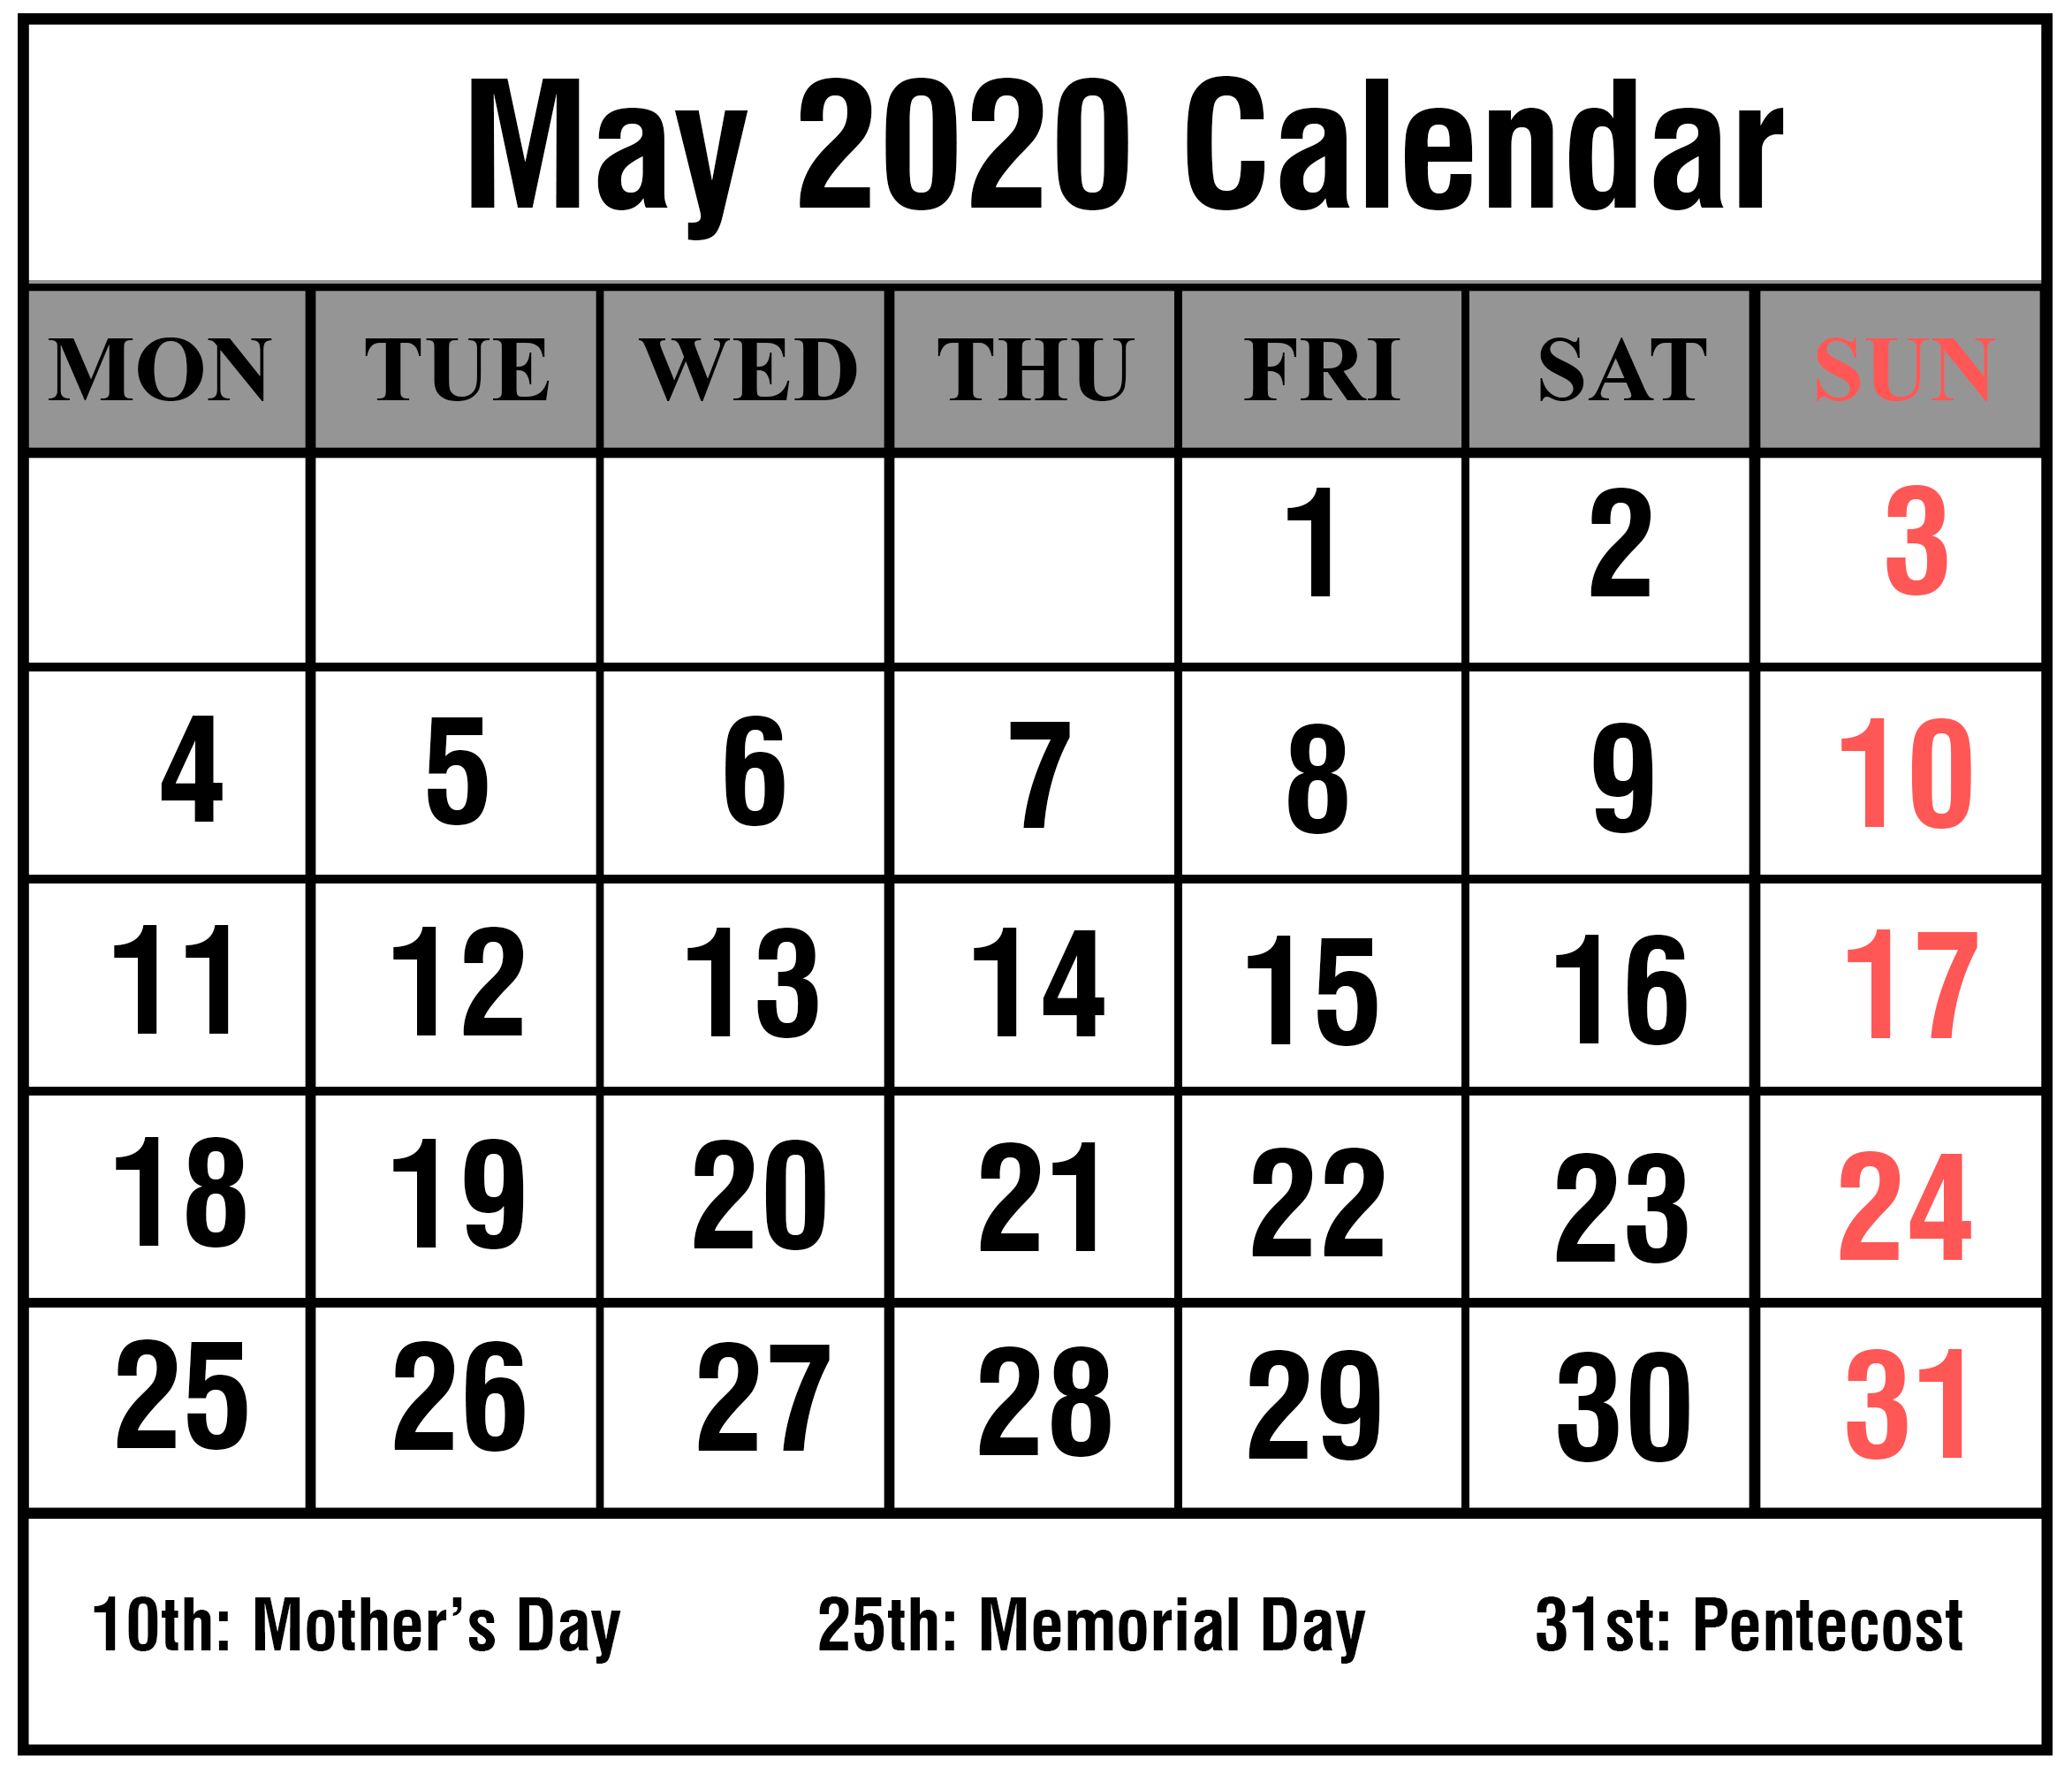 May 2020 Calendar Pdf | Printable May Calendar Template